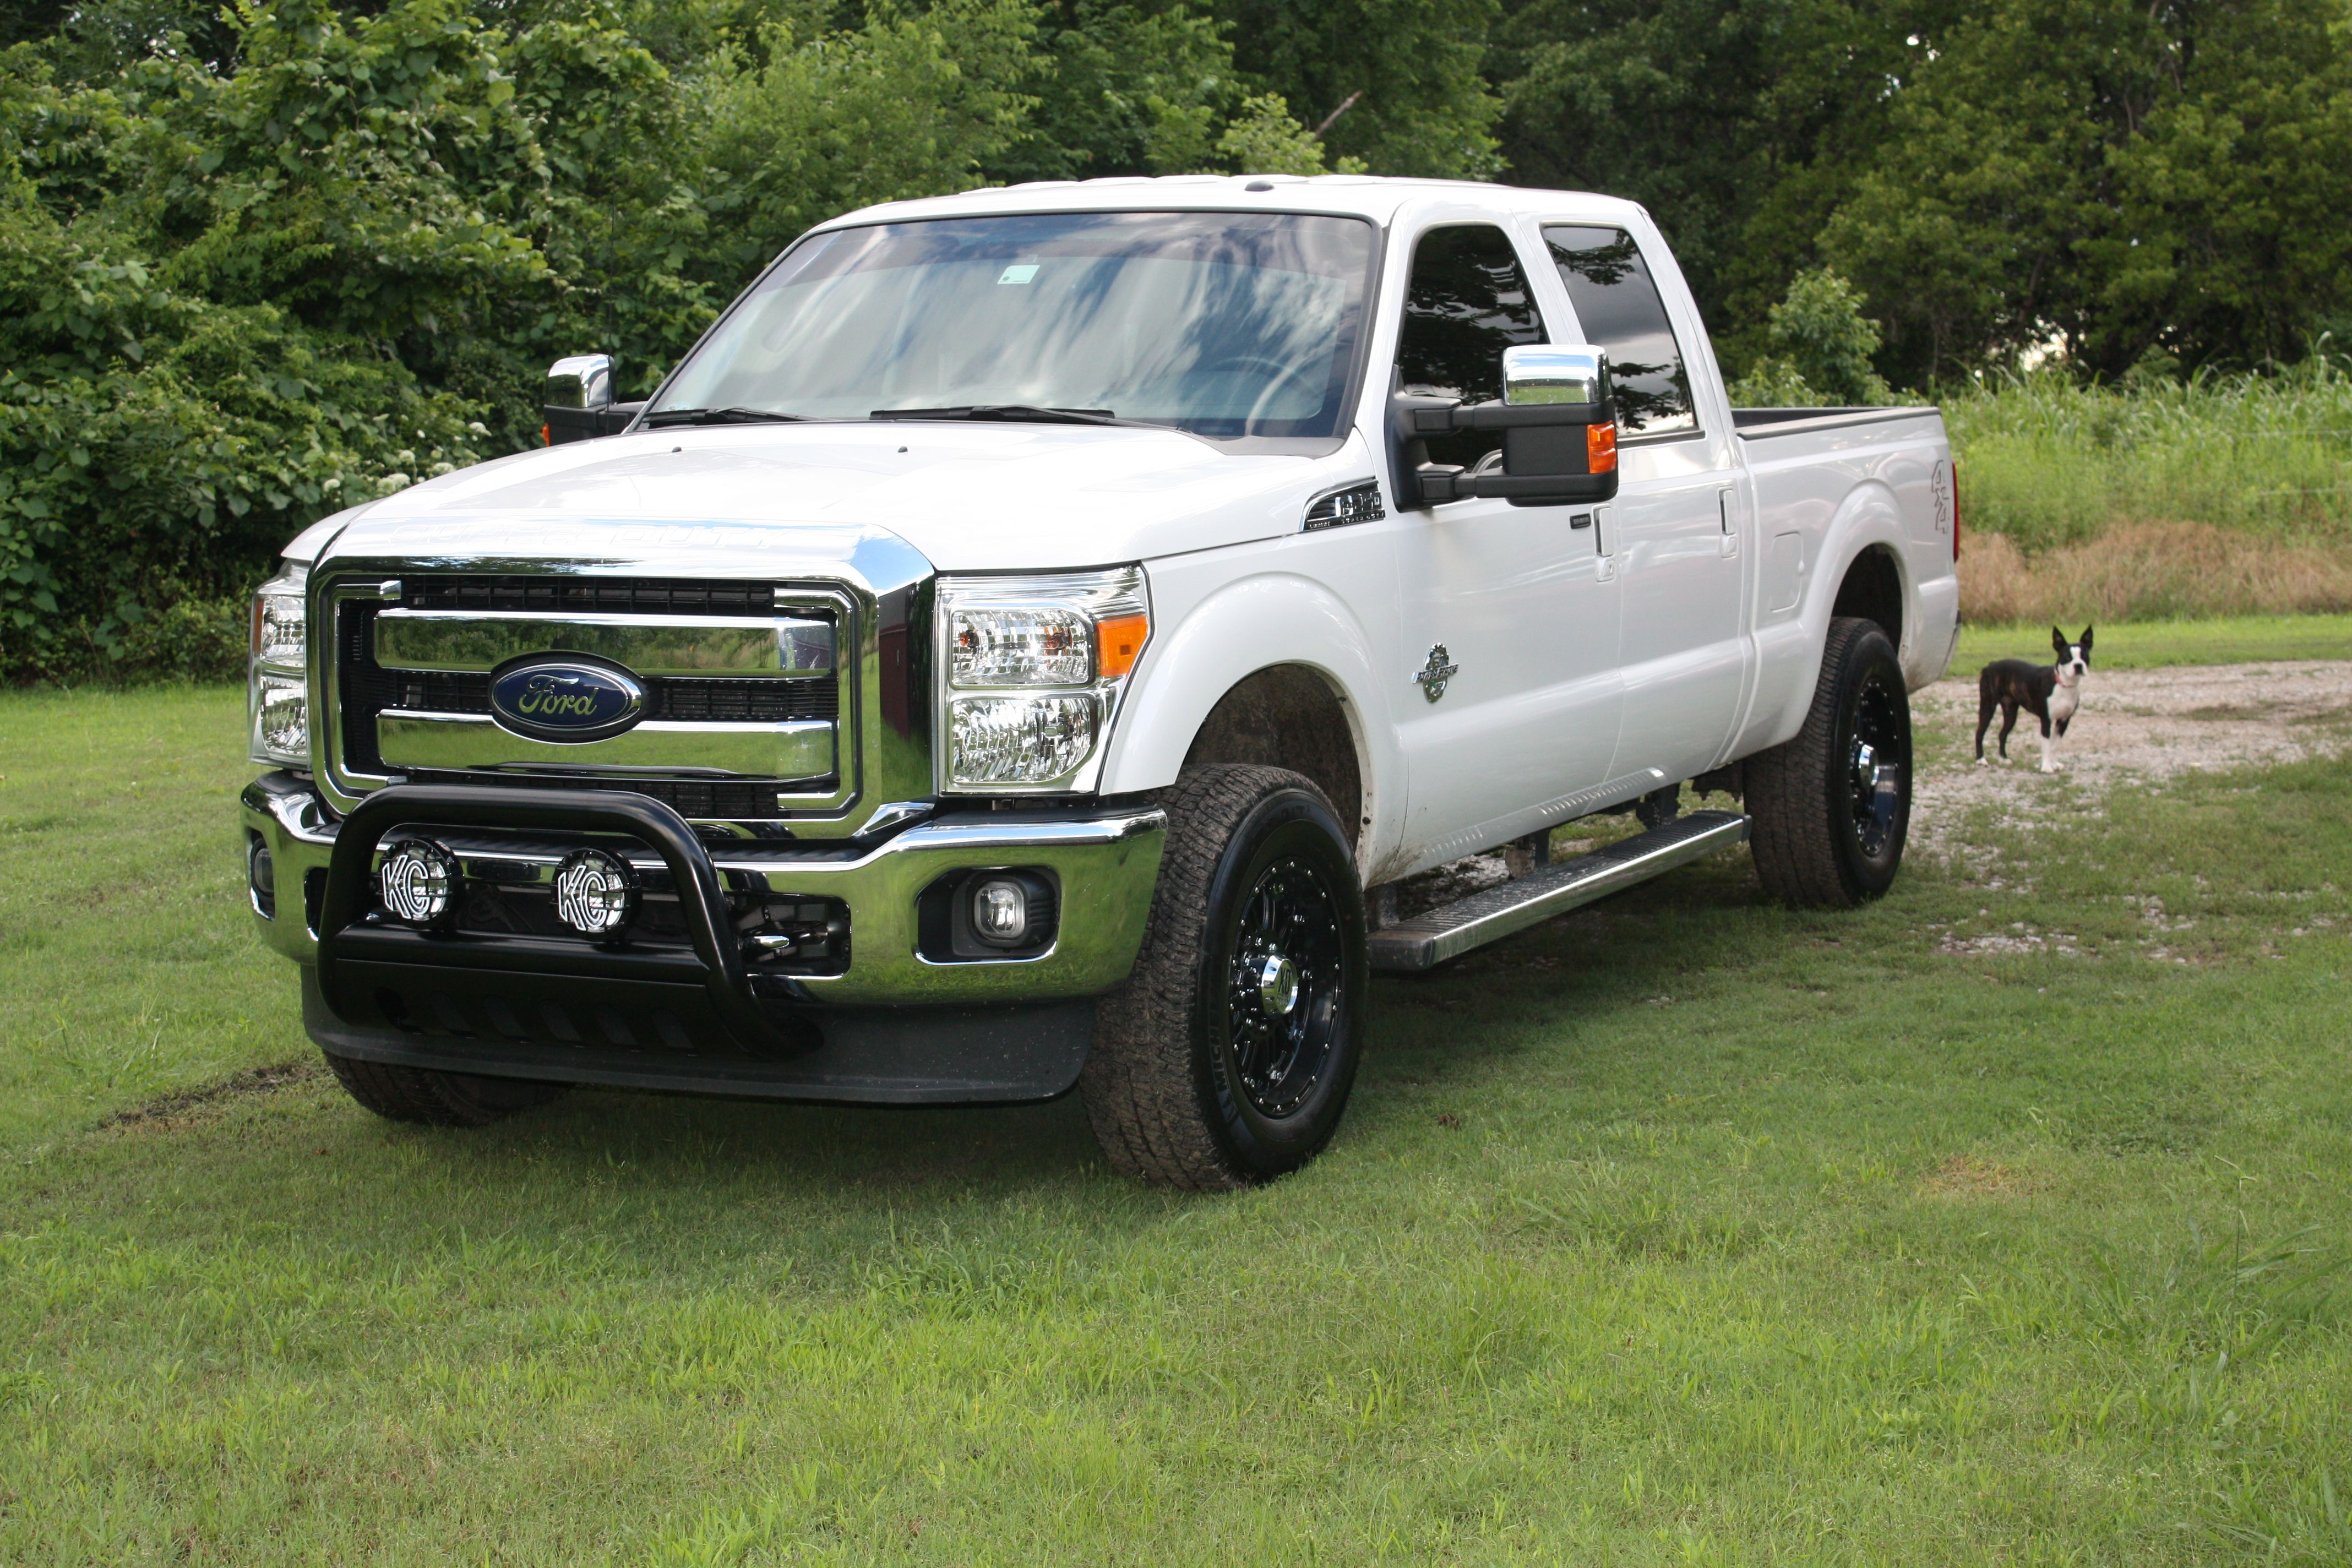 2013 f250 4x4 xd wheels kc lights bull bar and its mine cars 2013 f250 4x4 xd wheels kc lights bull bar and its mine mozeypictures Image collections